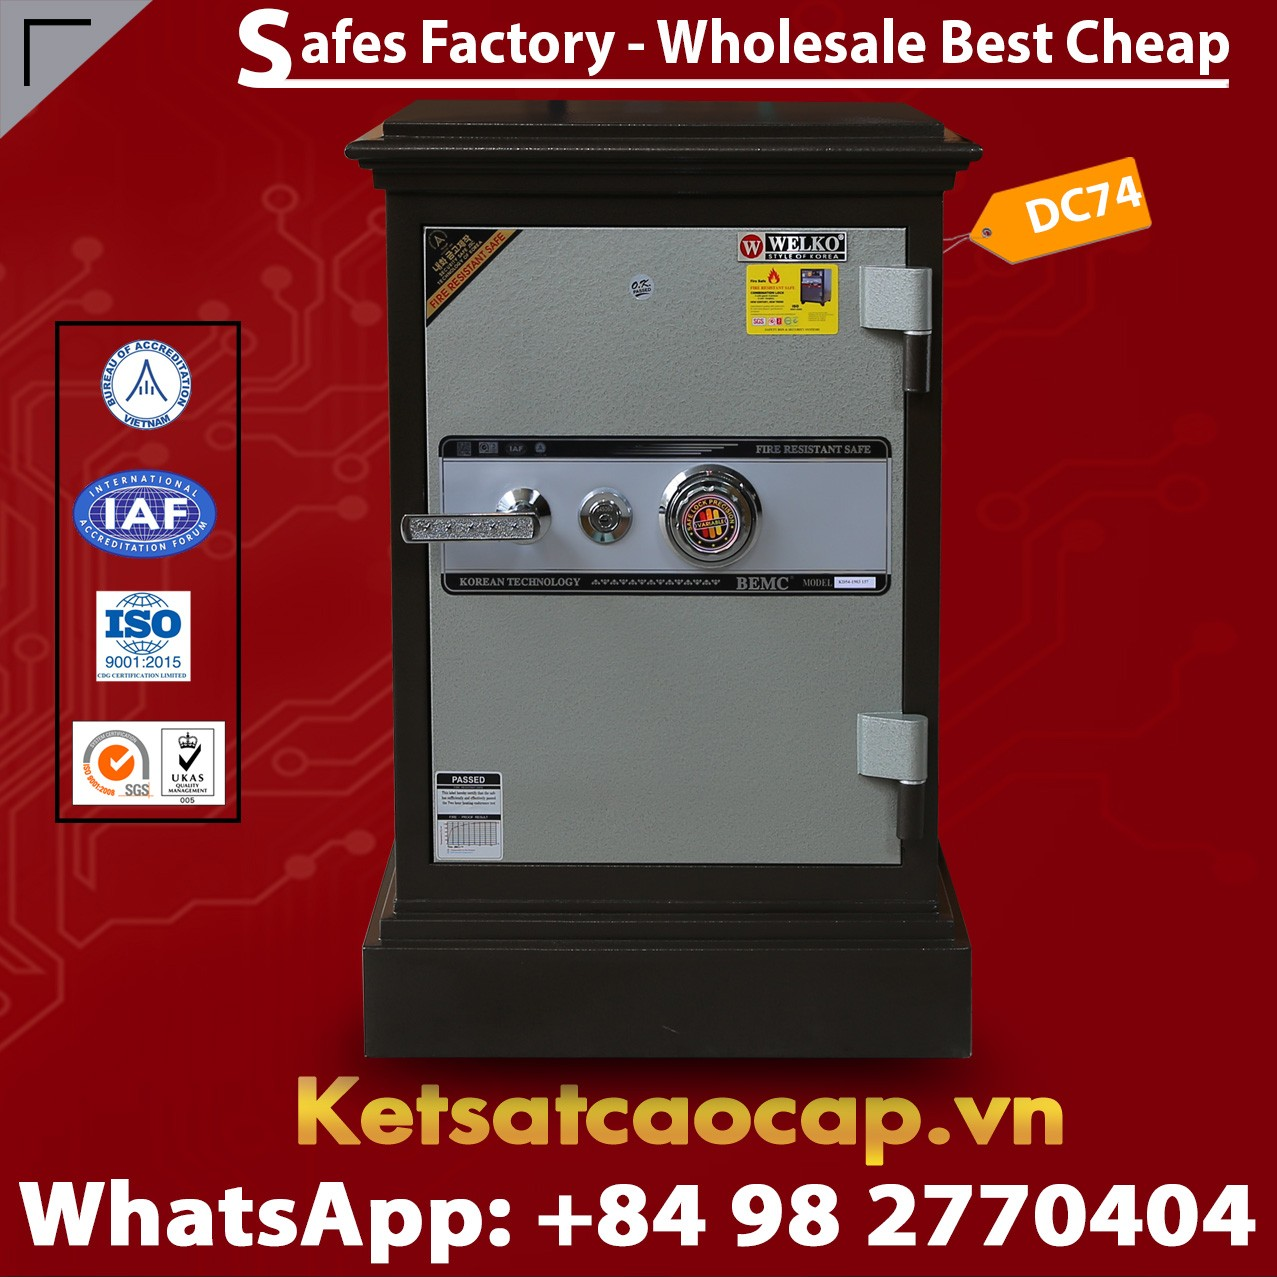 Home Safe factory and suppliers